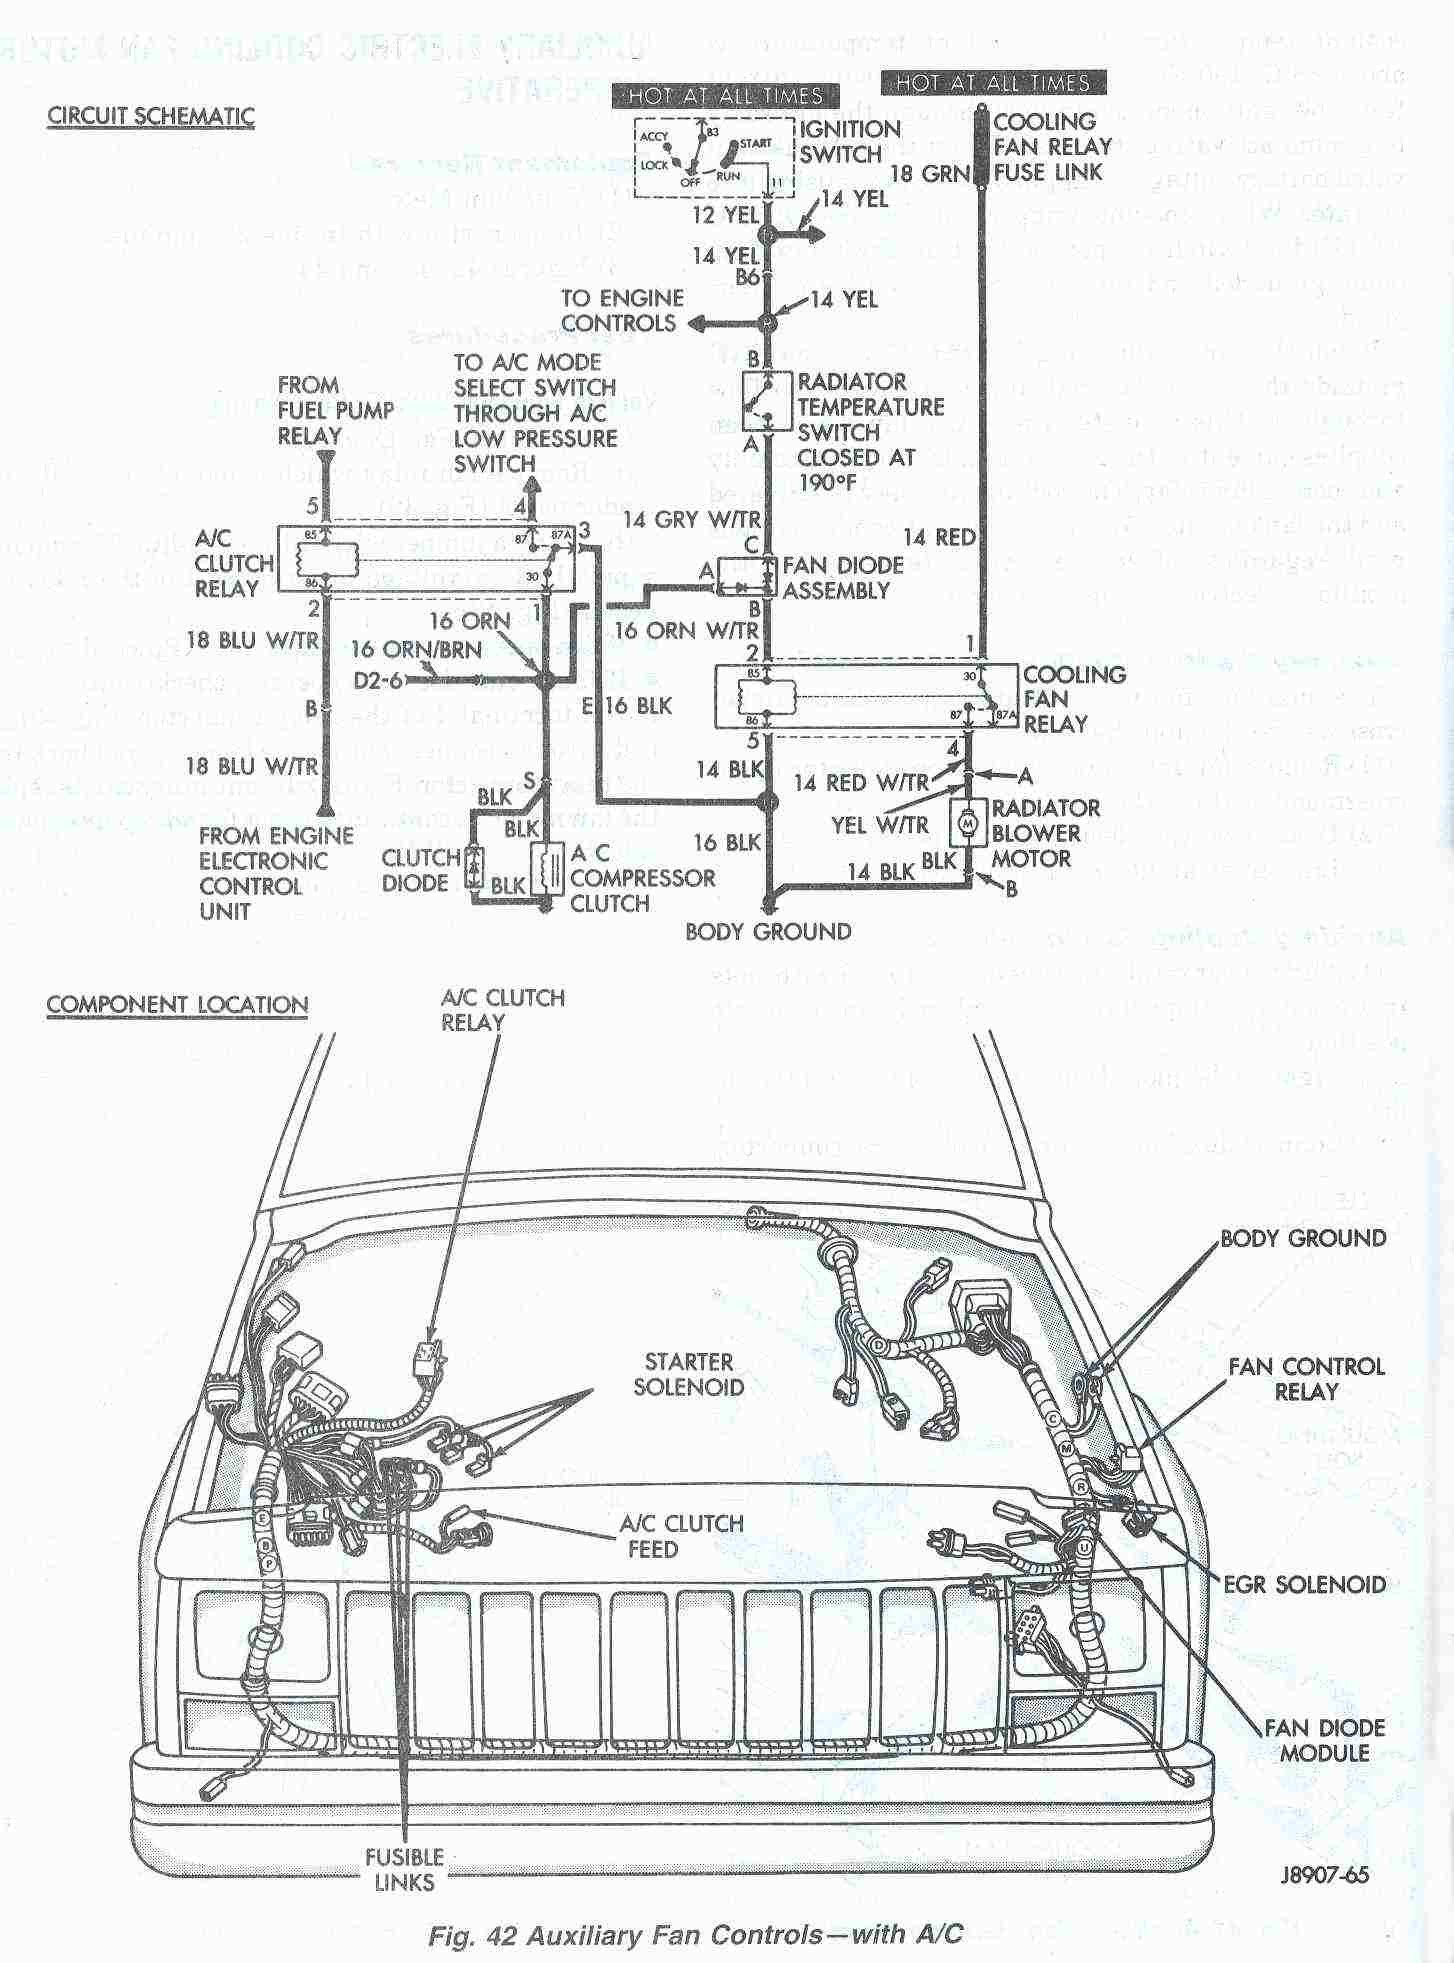 Jeep 4 0 Engine Diagram Wiring Diagram for Ac Unit thermostat Along with Jeep  Cherokee Of